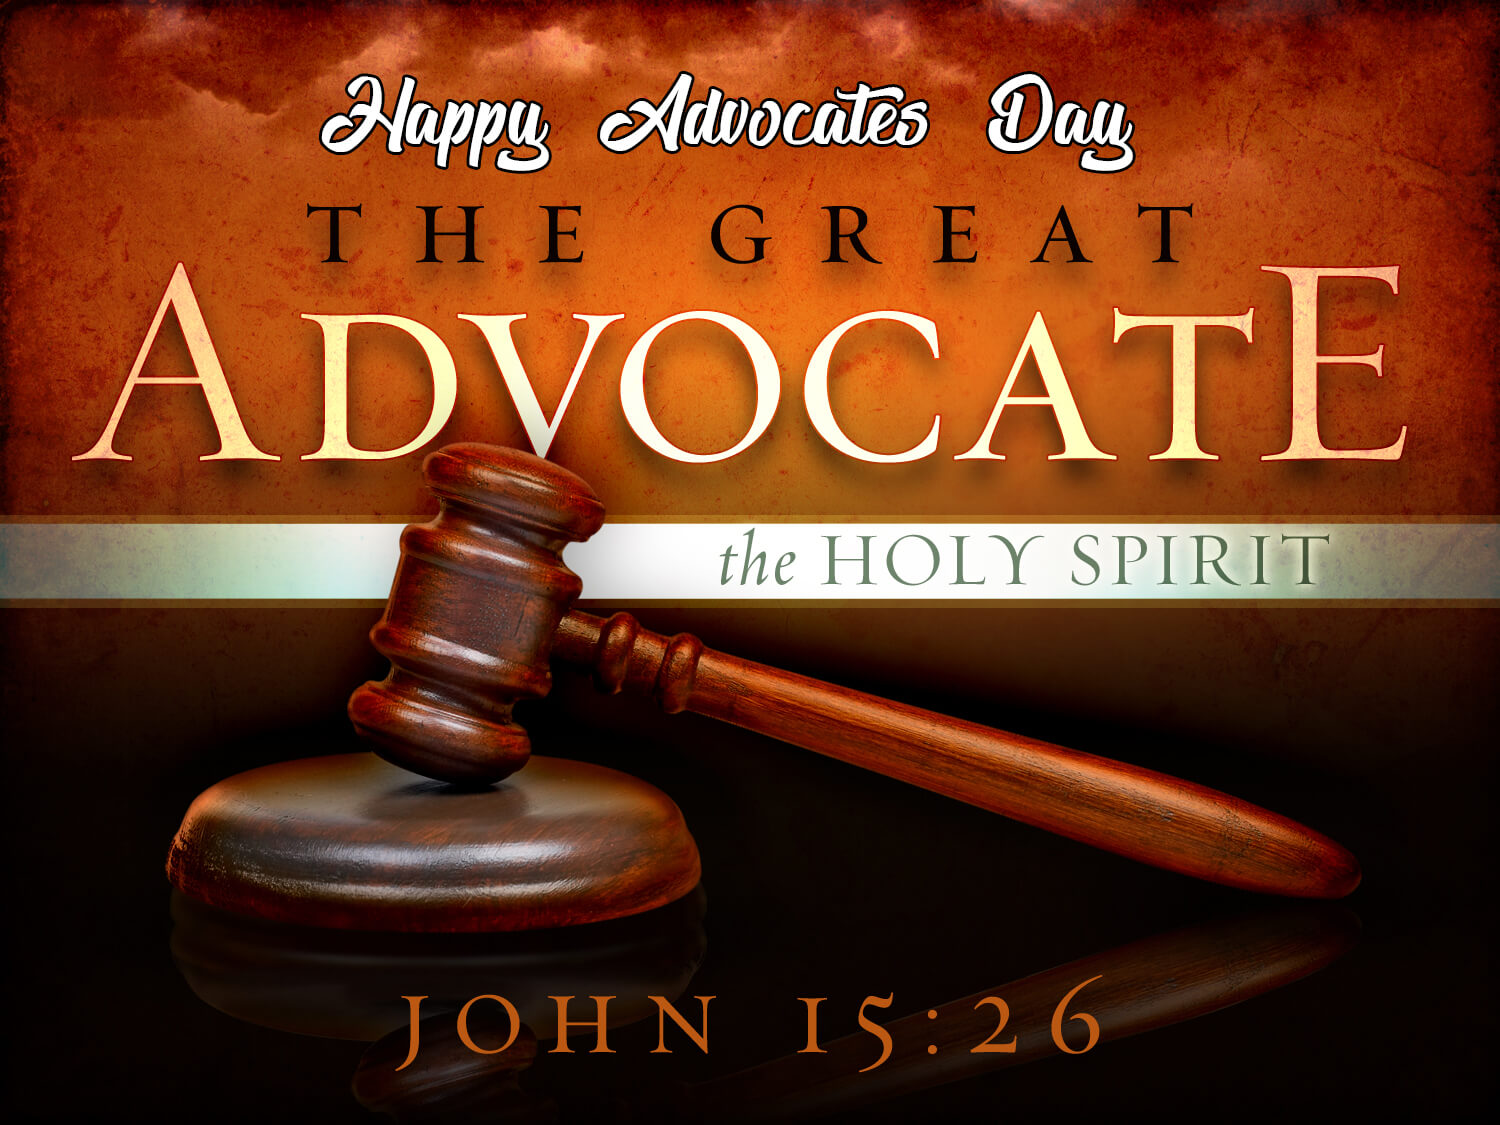 happy advocates day wishes holyspirit christian hd wallpaper